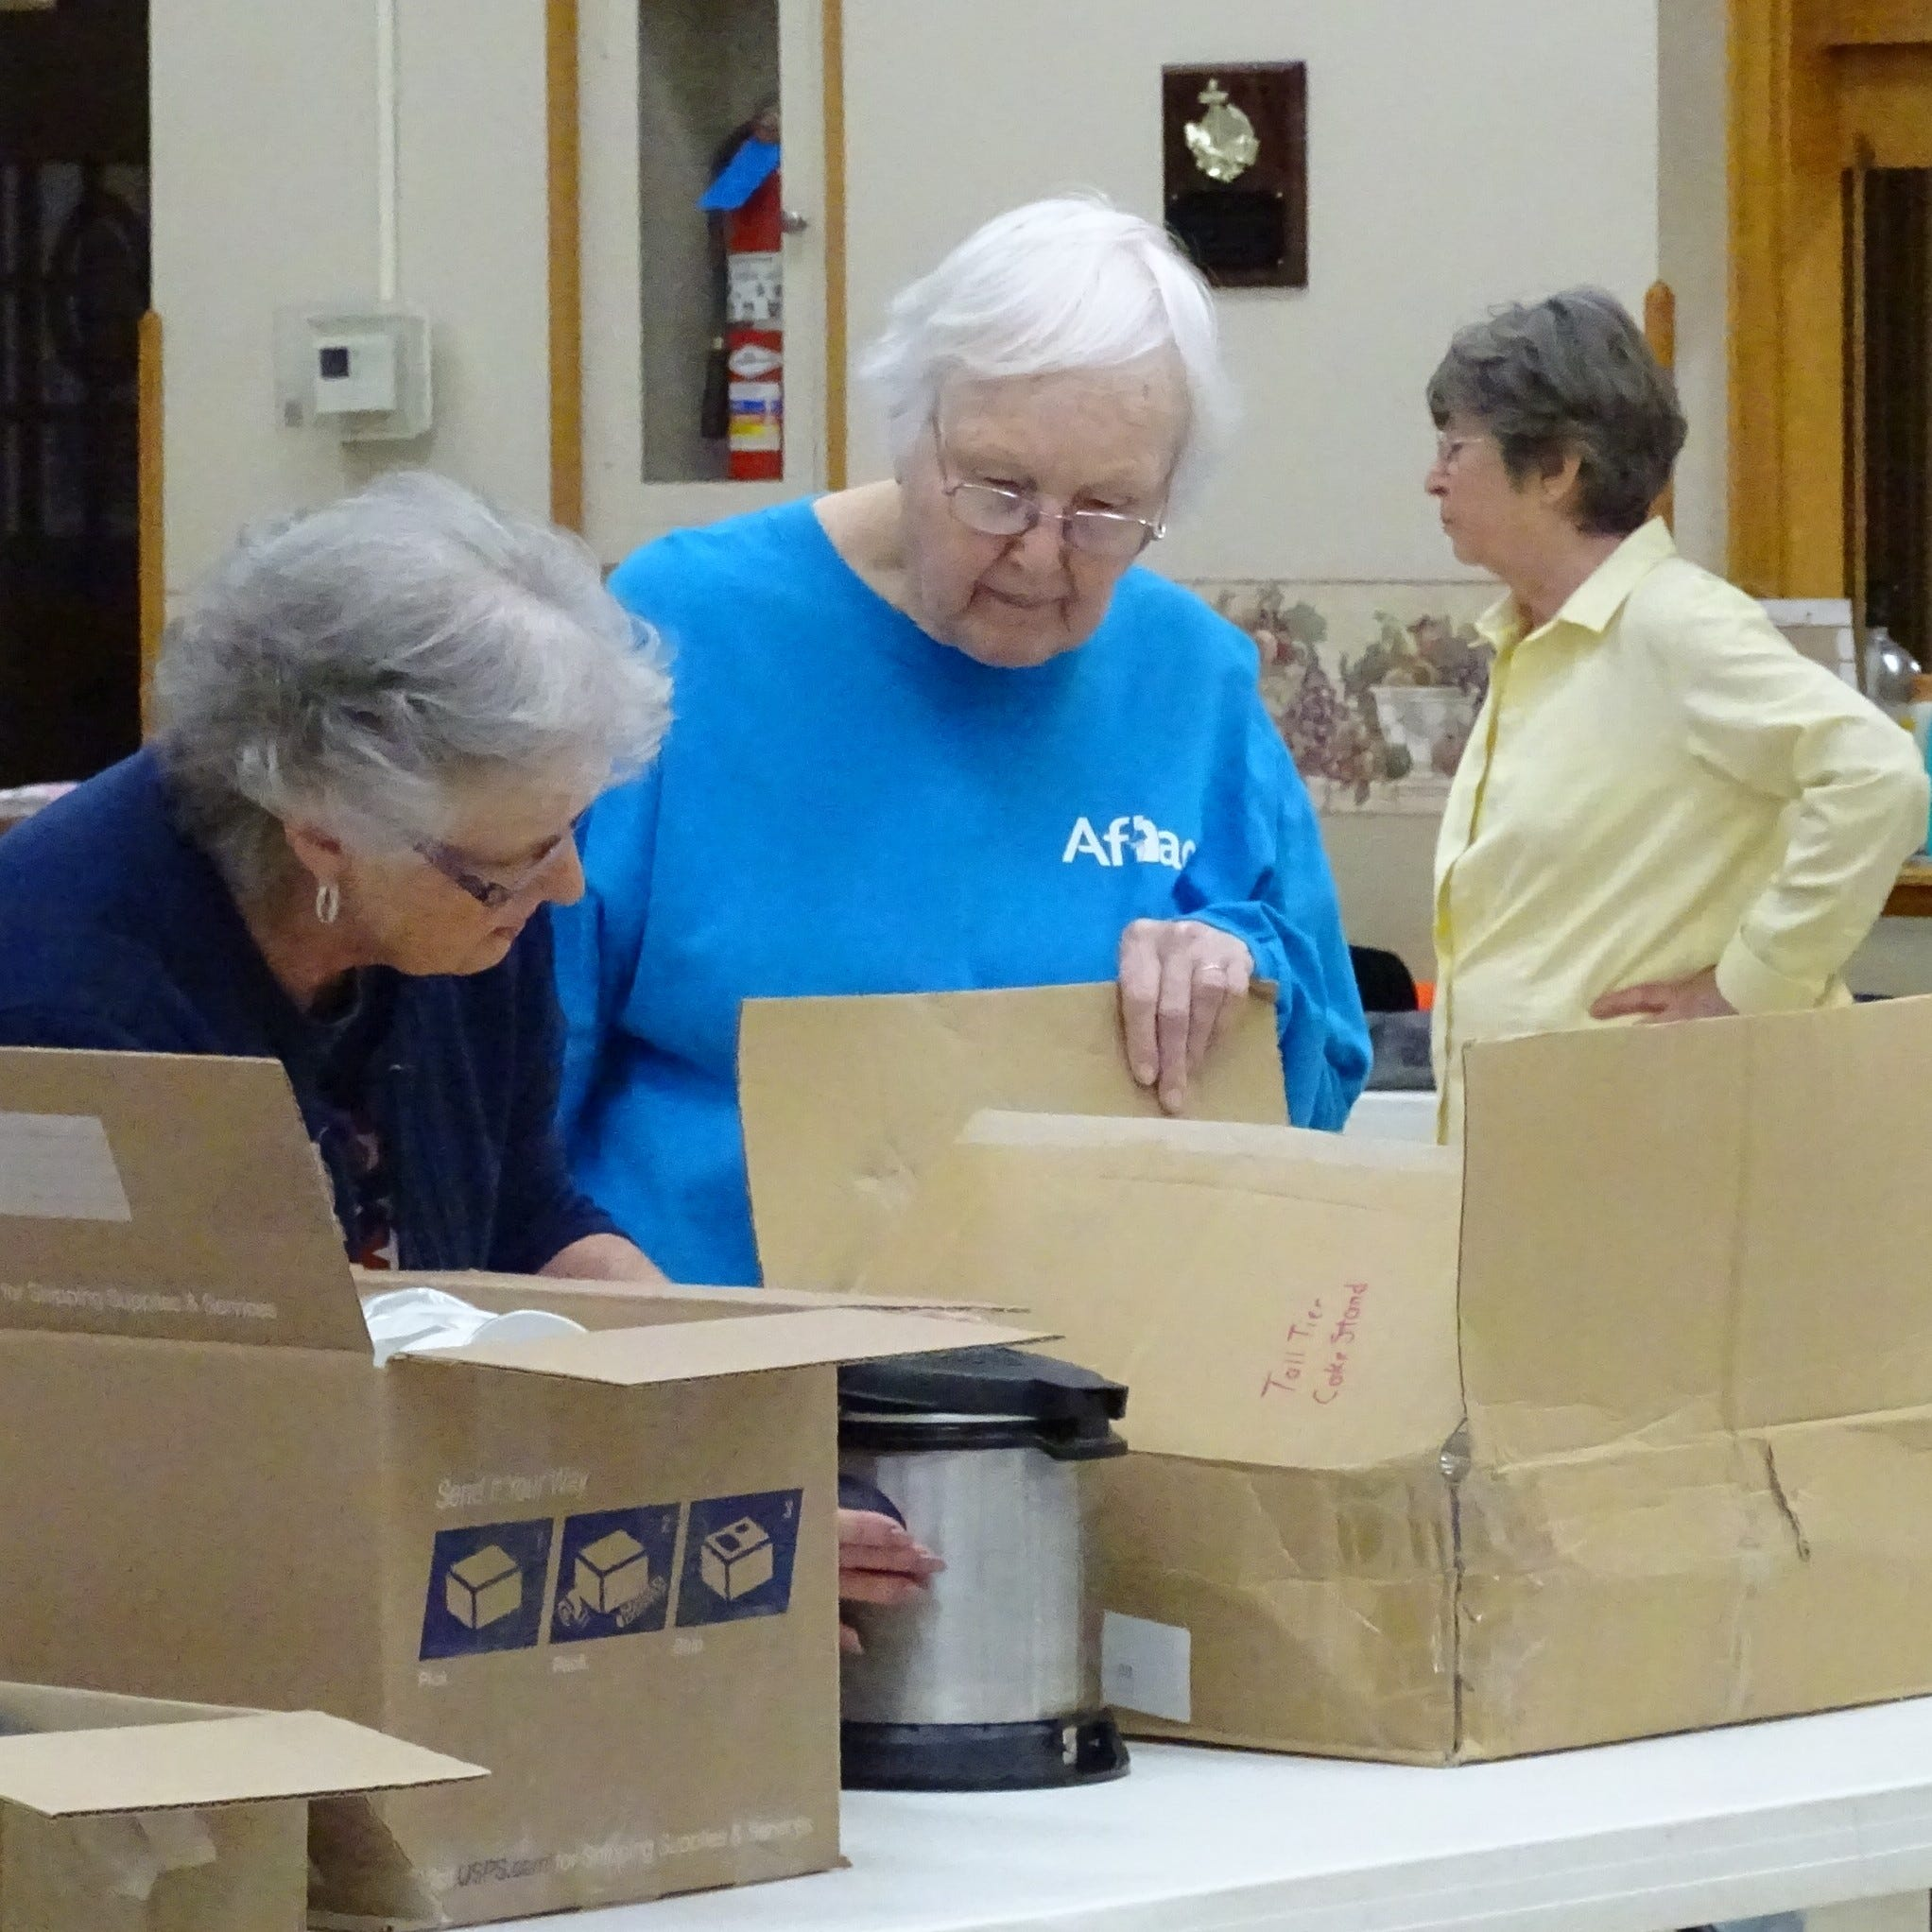 'A little of everything' at church rummage sale